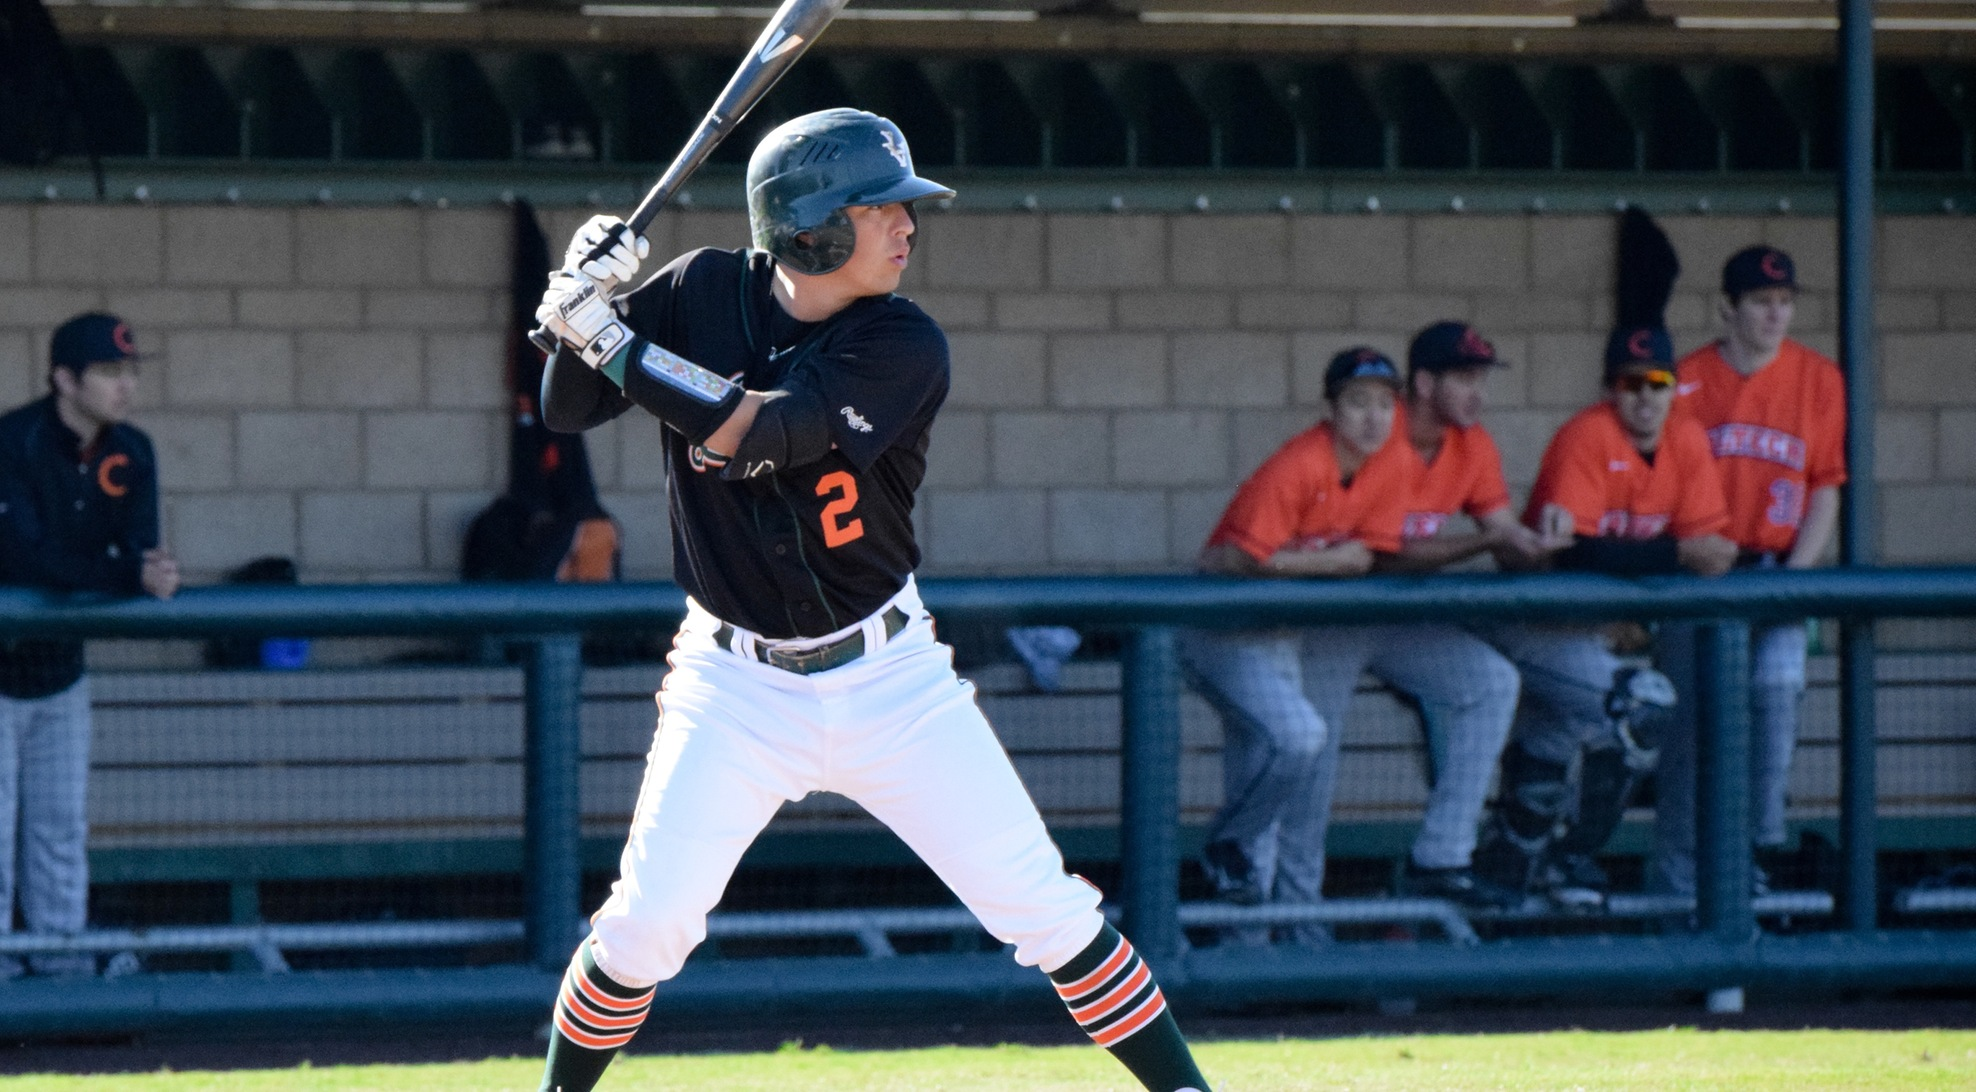 Douglas walk-off single lifts La Verne past No. 14 Kean 6-5